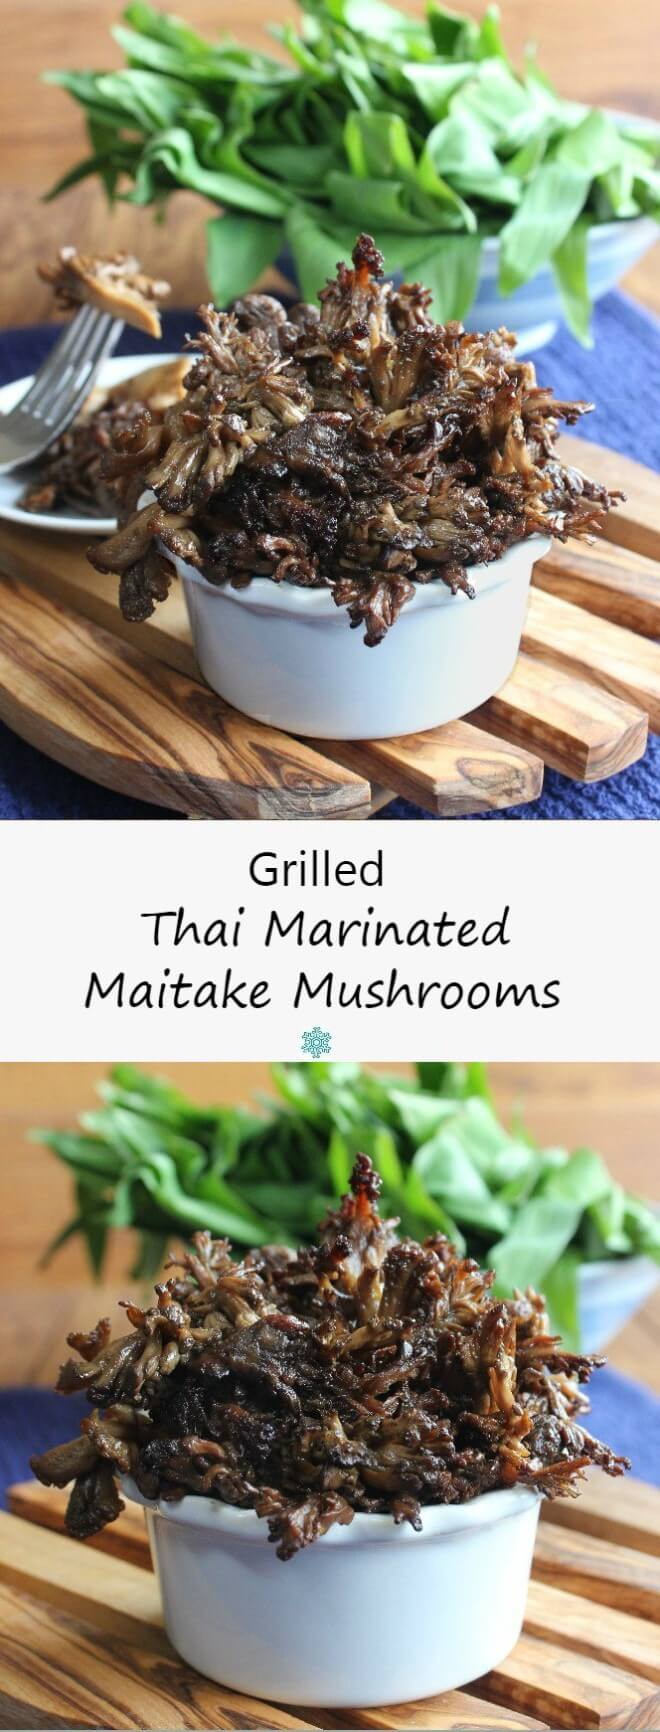 Grilled Thai Marinated Maitake Mushrooms are glistening with a flavorful Asian marinade.  A great tasting side for the grill or grill pan.